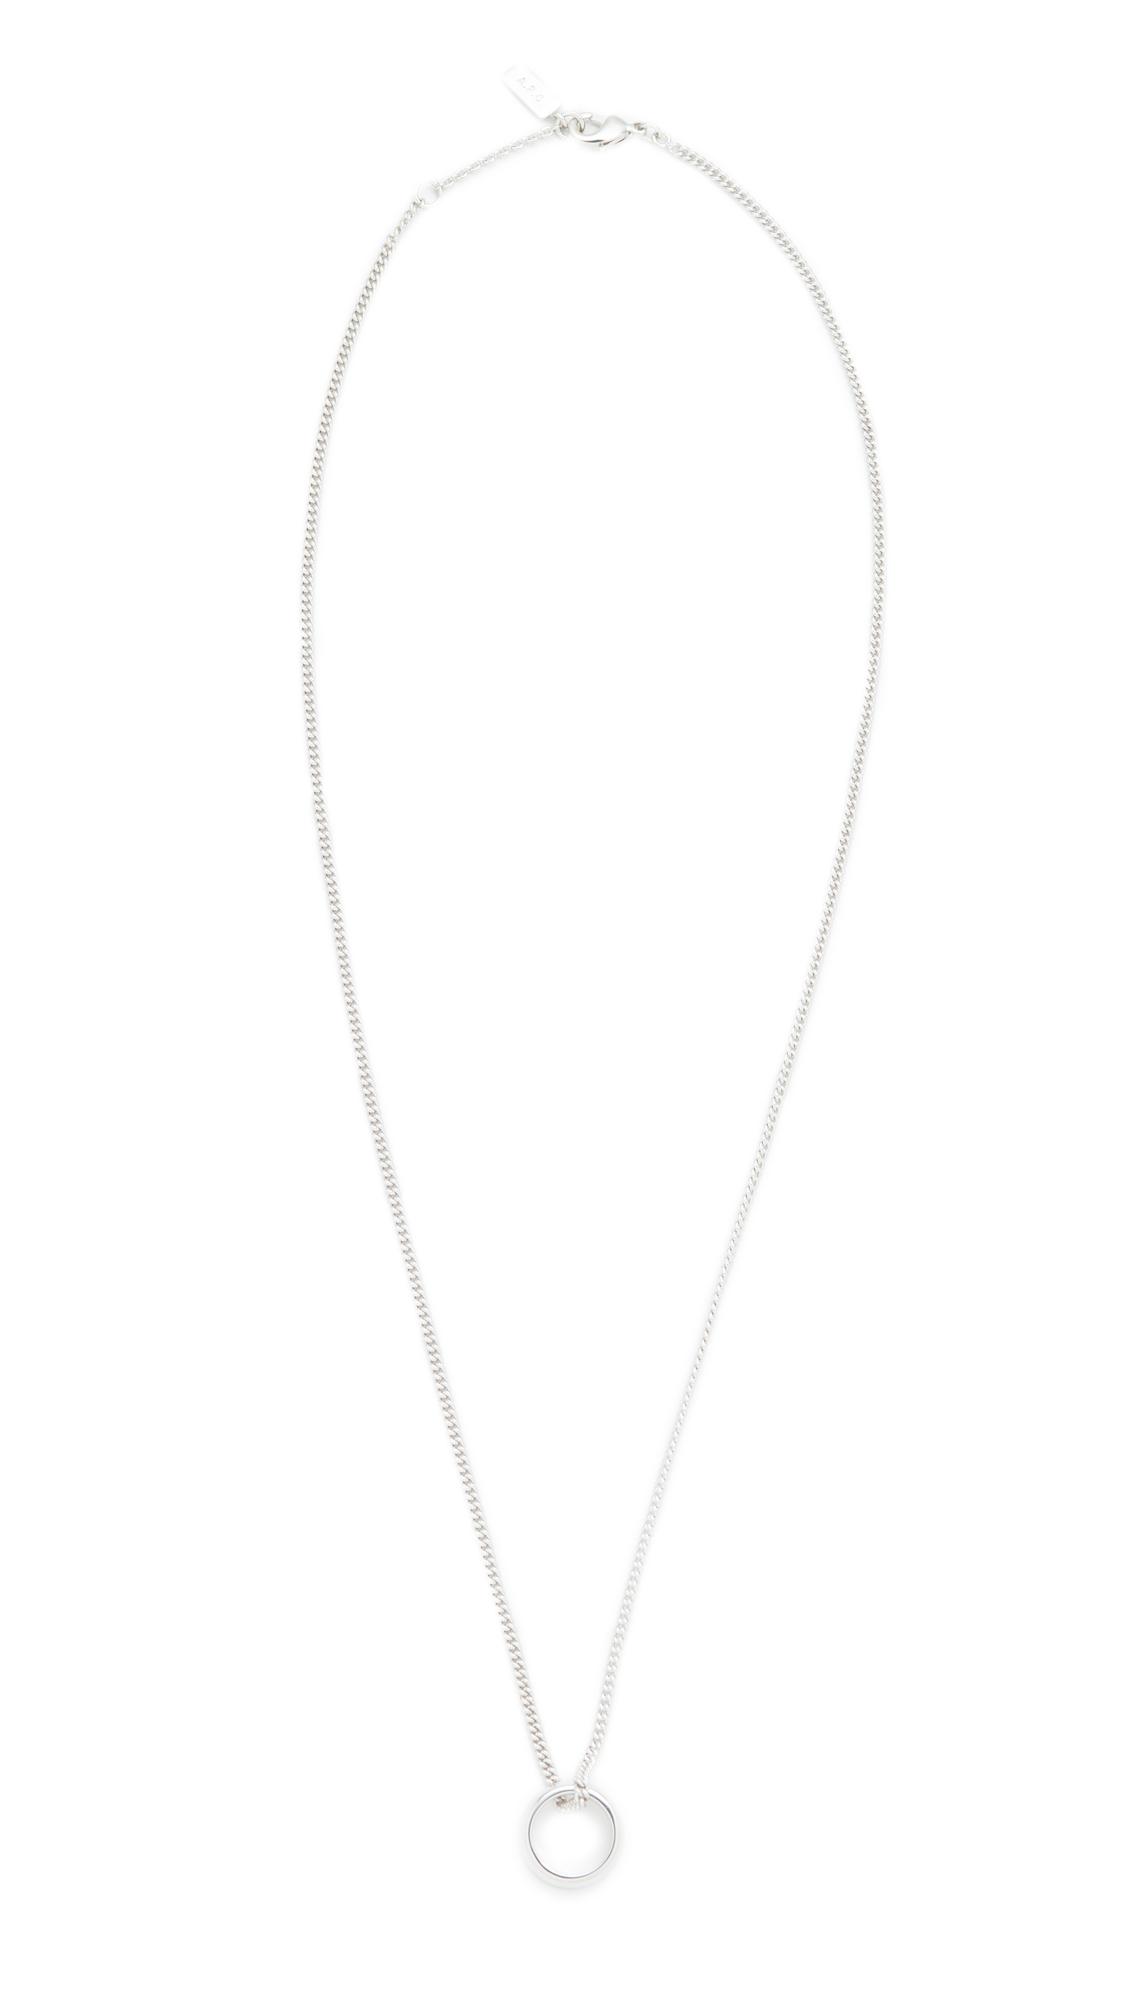 apc footshop en fashion collier c curtis accessories a necklace laiton p